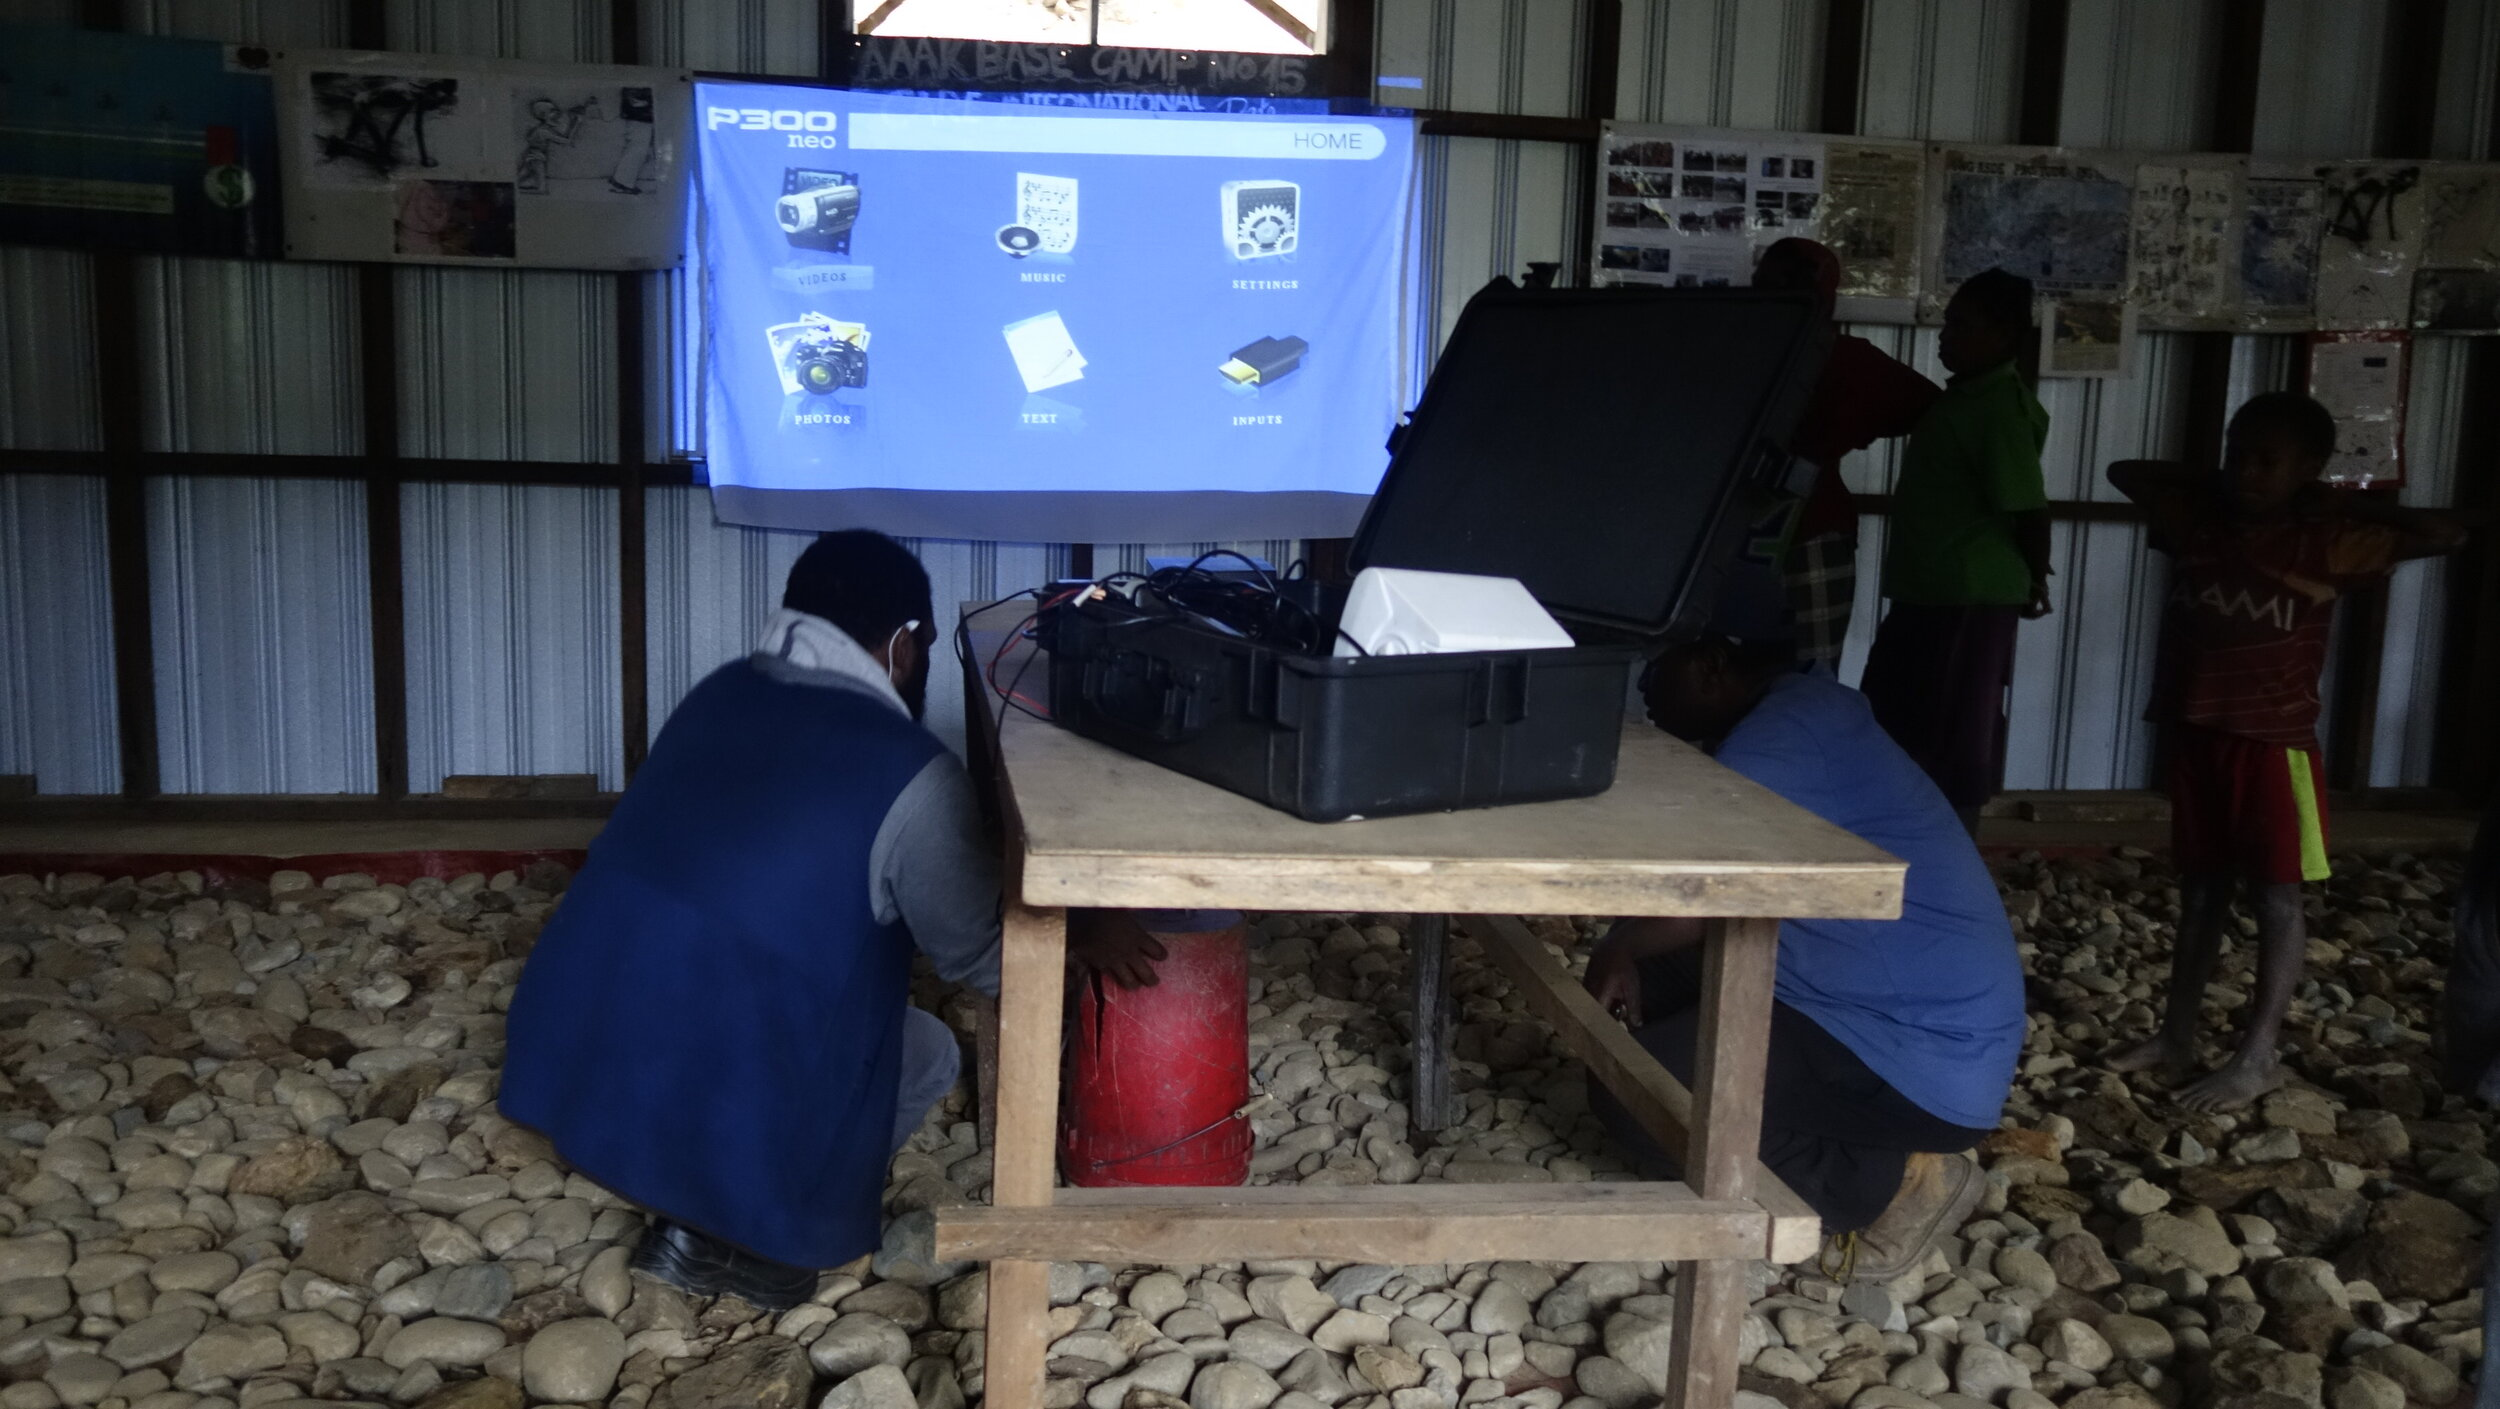 Above: The roving cinema kit was set up in the local villages to share informational videos.